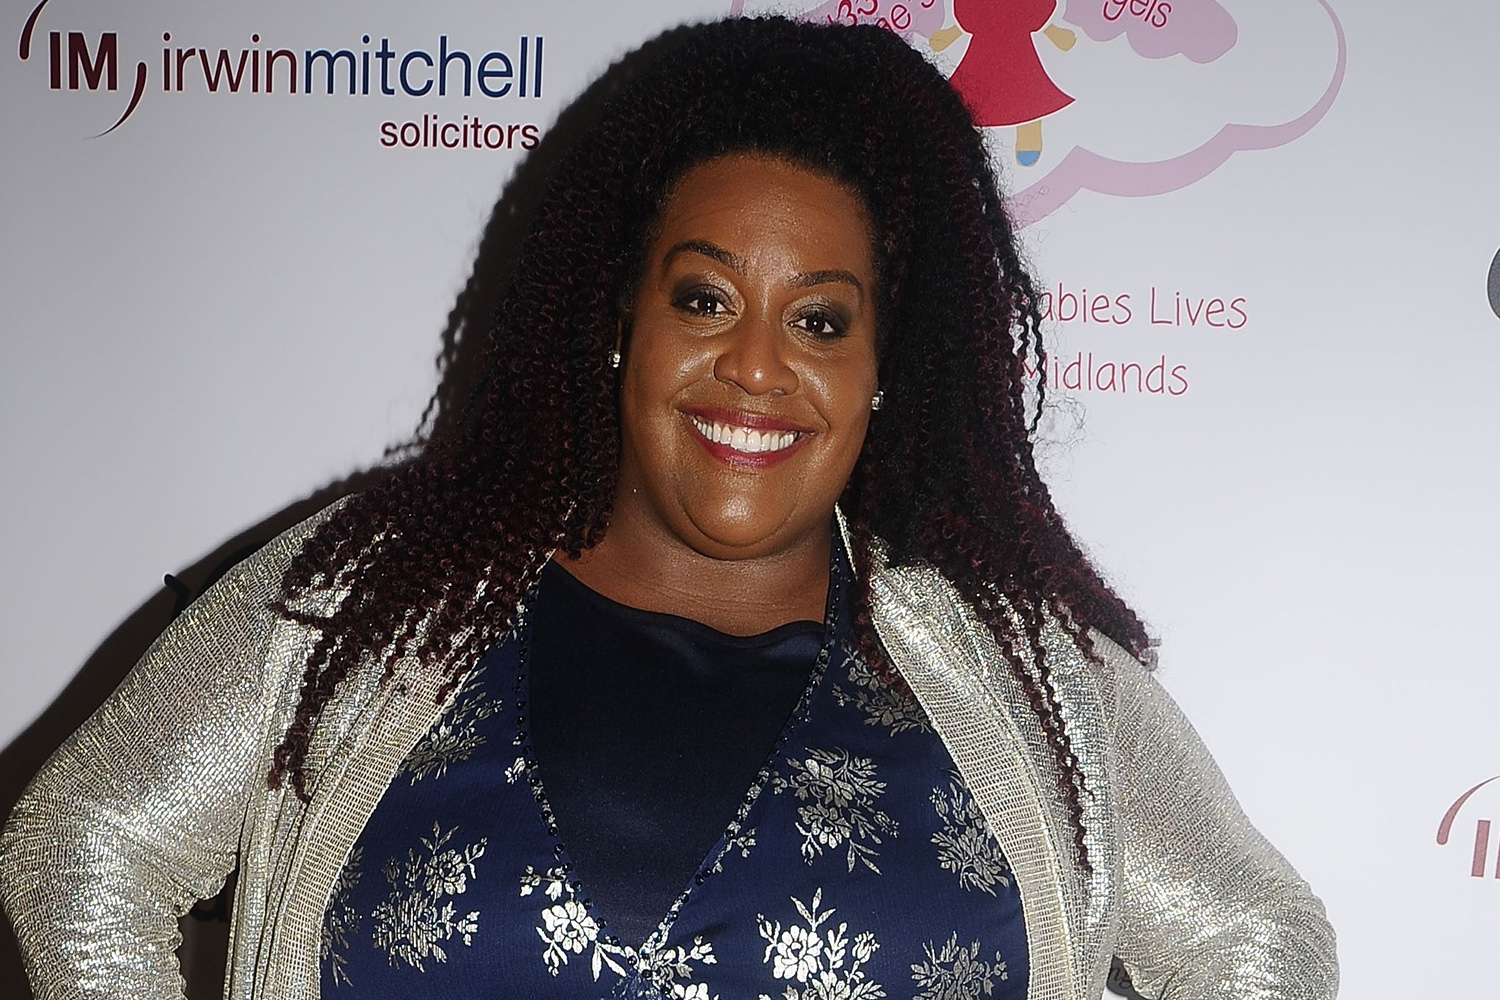 Alison Hammond tells fans to 'be patient' as she reveals plans to launch her own show